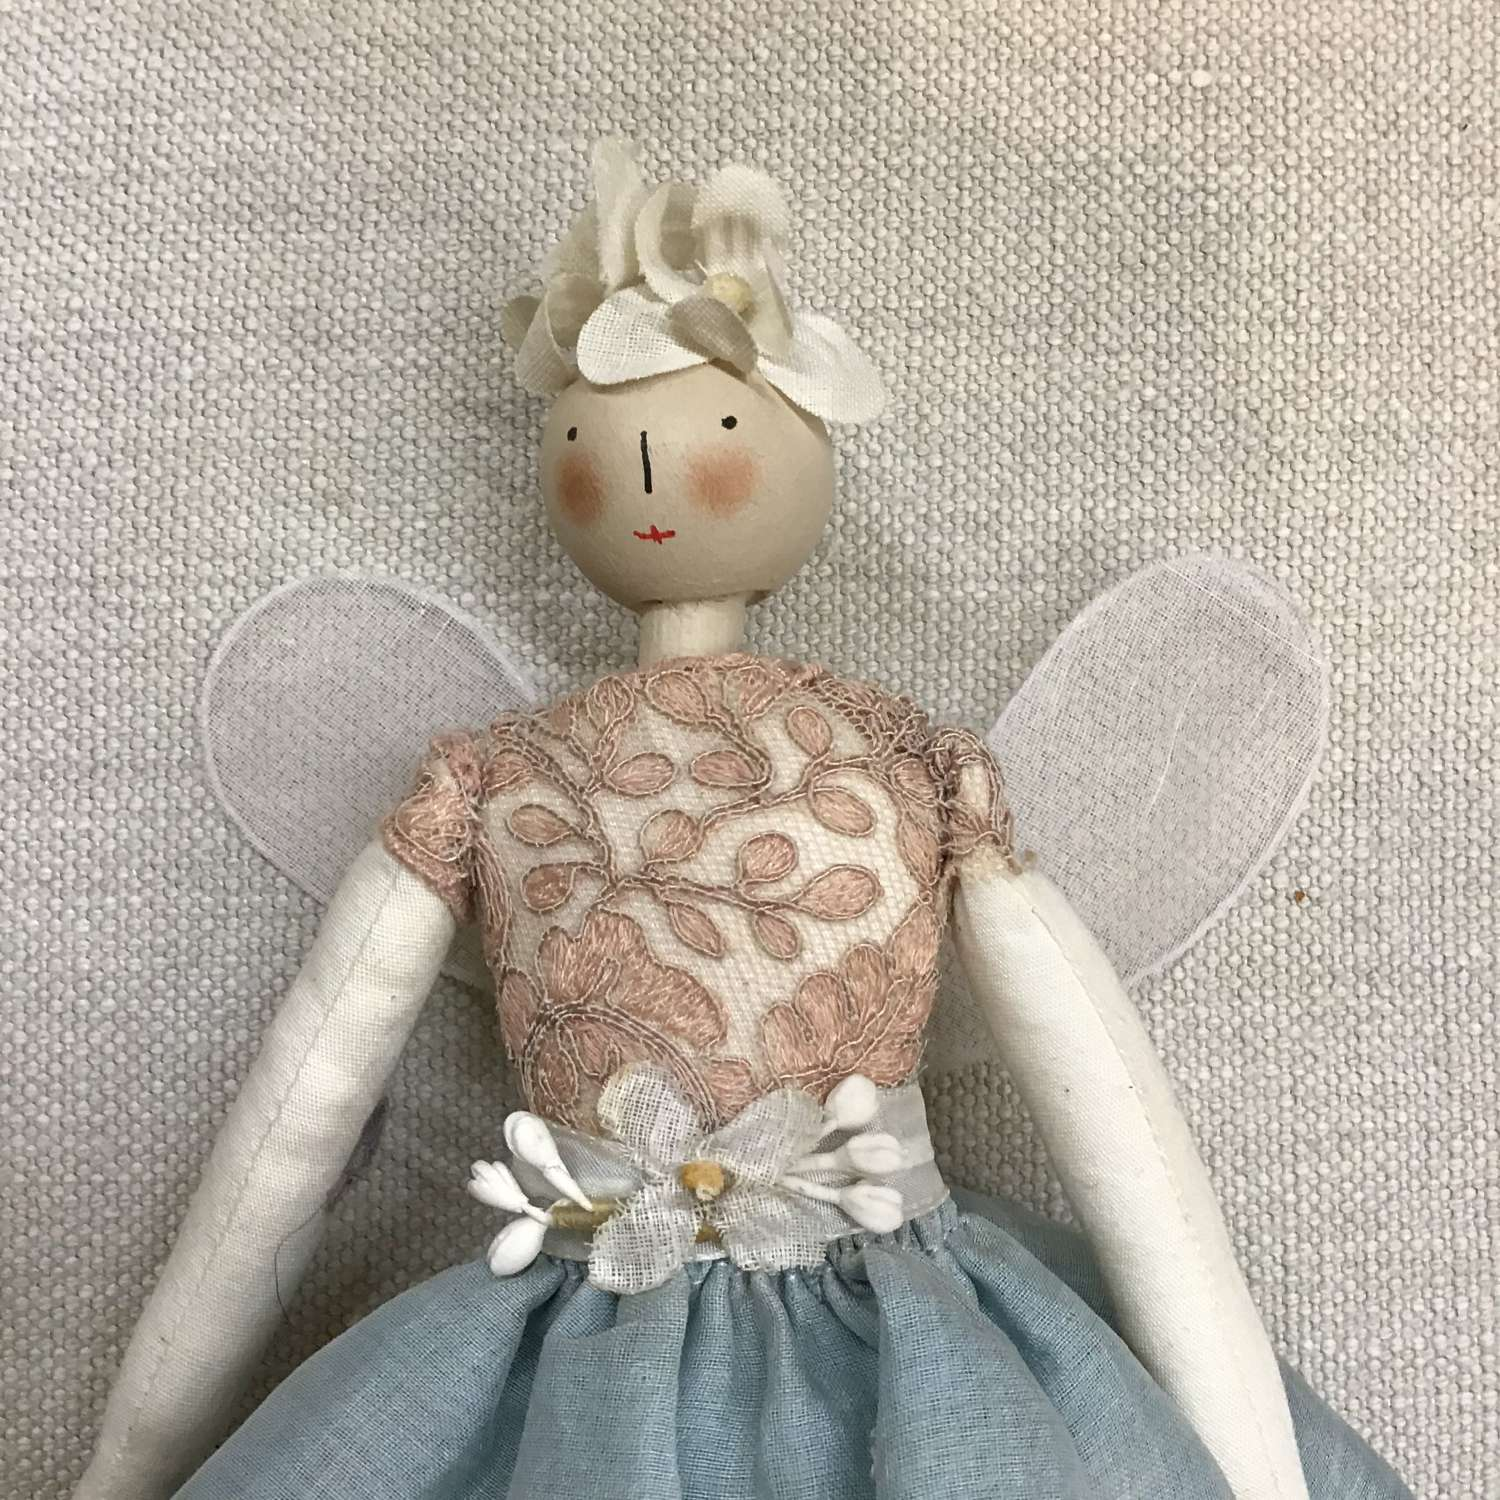 Handcrafted cloth fairy doll made with vintage fabric and trims